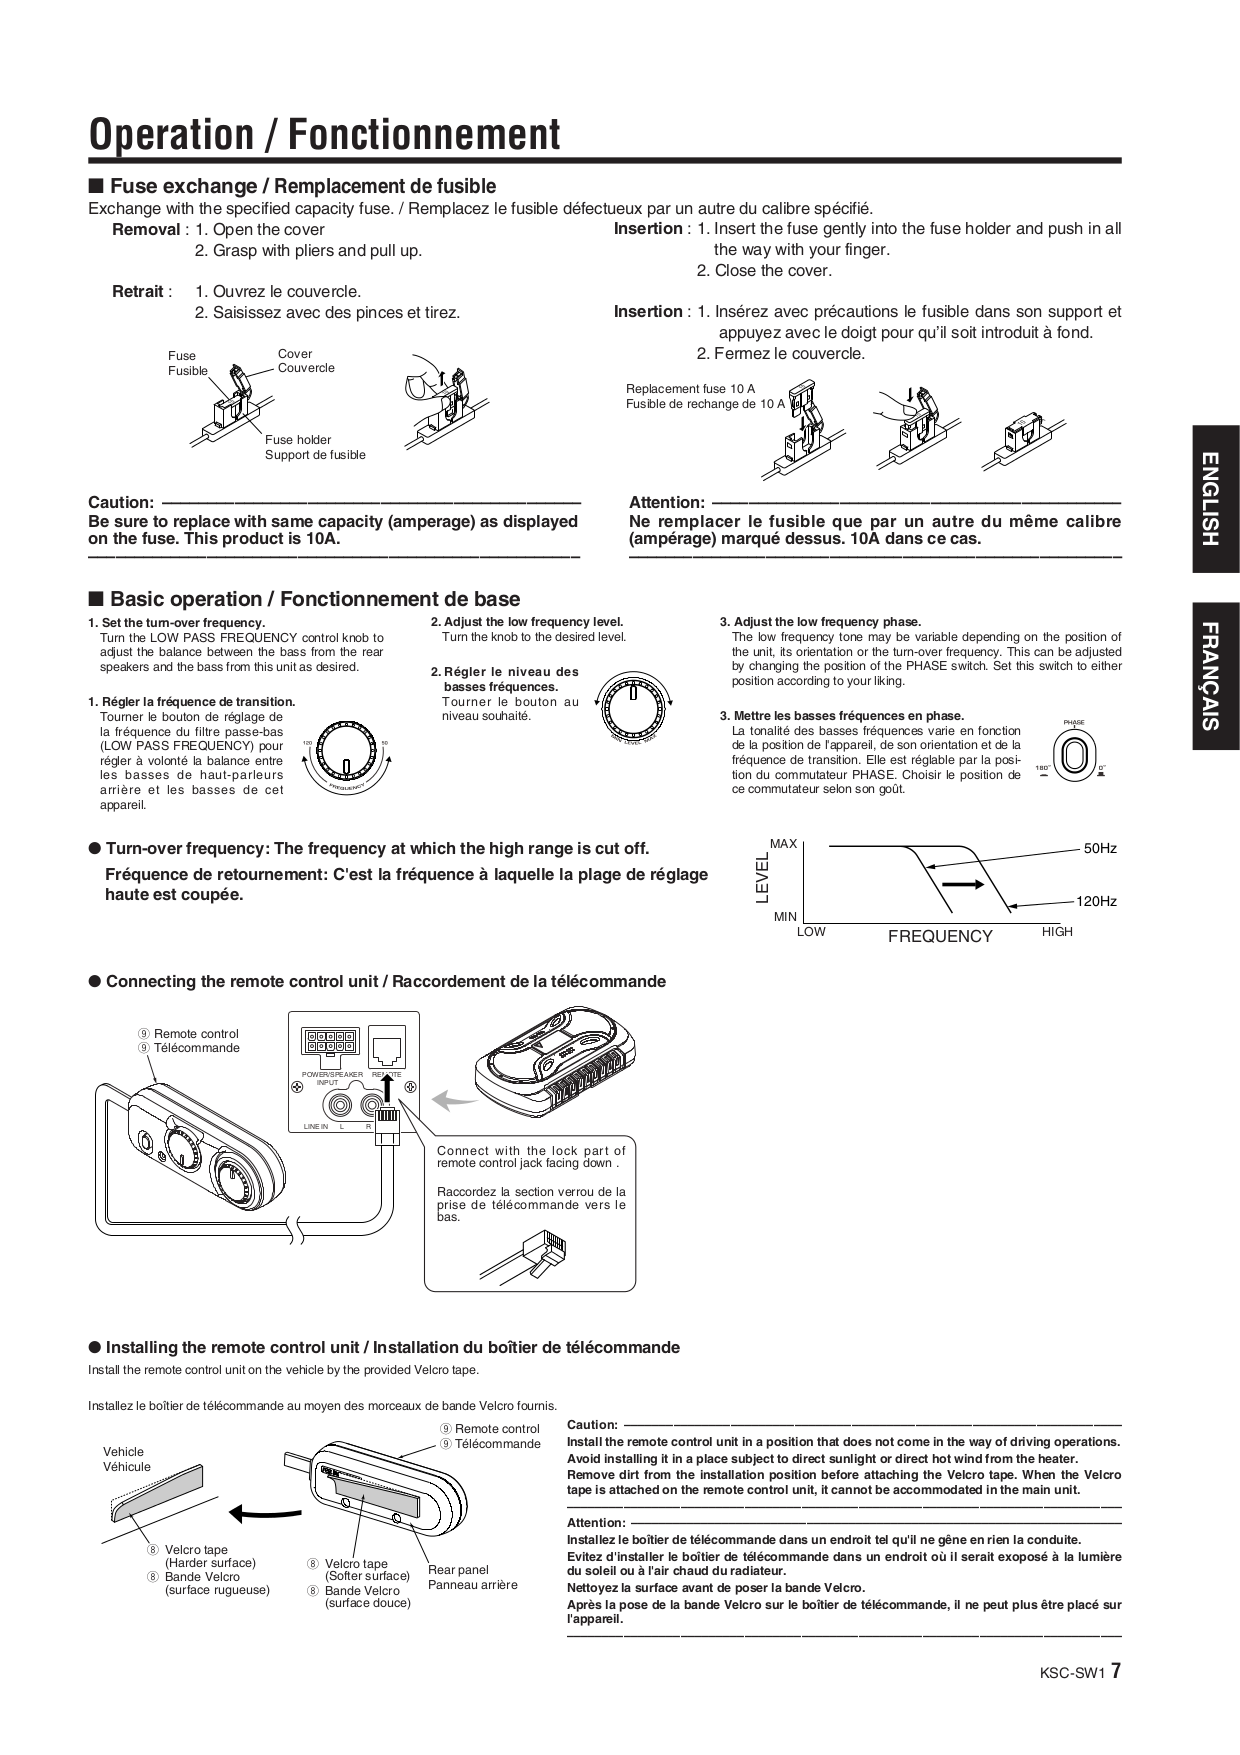 KSC SW1 ins manual.pdf 6 pdf manual for kenwood subwoofer ksc sw1 kenwood ksc-sw1 wiring harness at alyssarenee.co